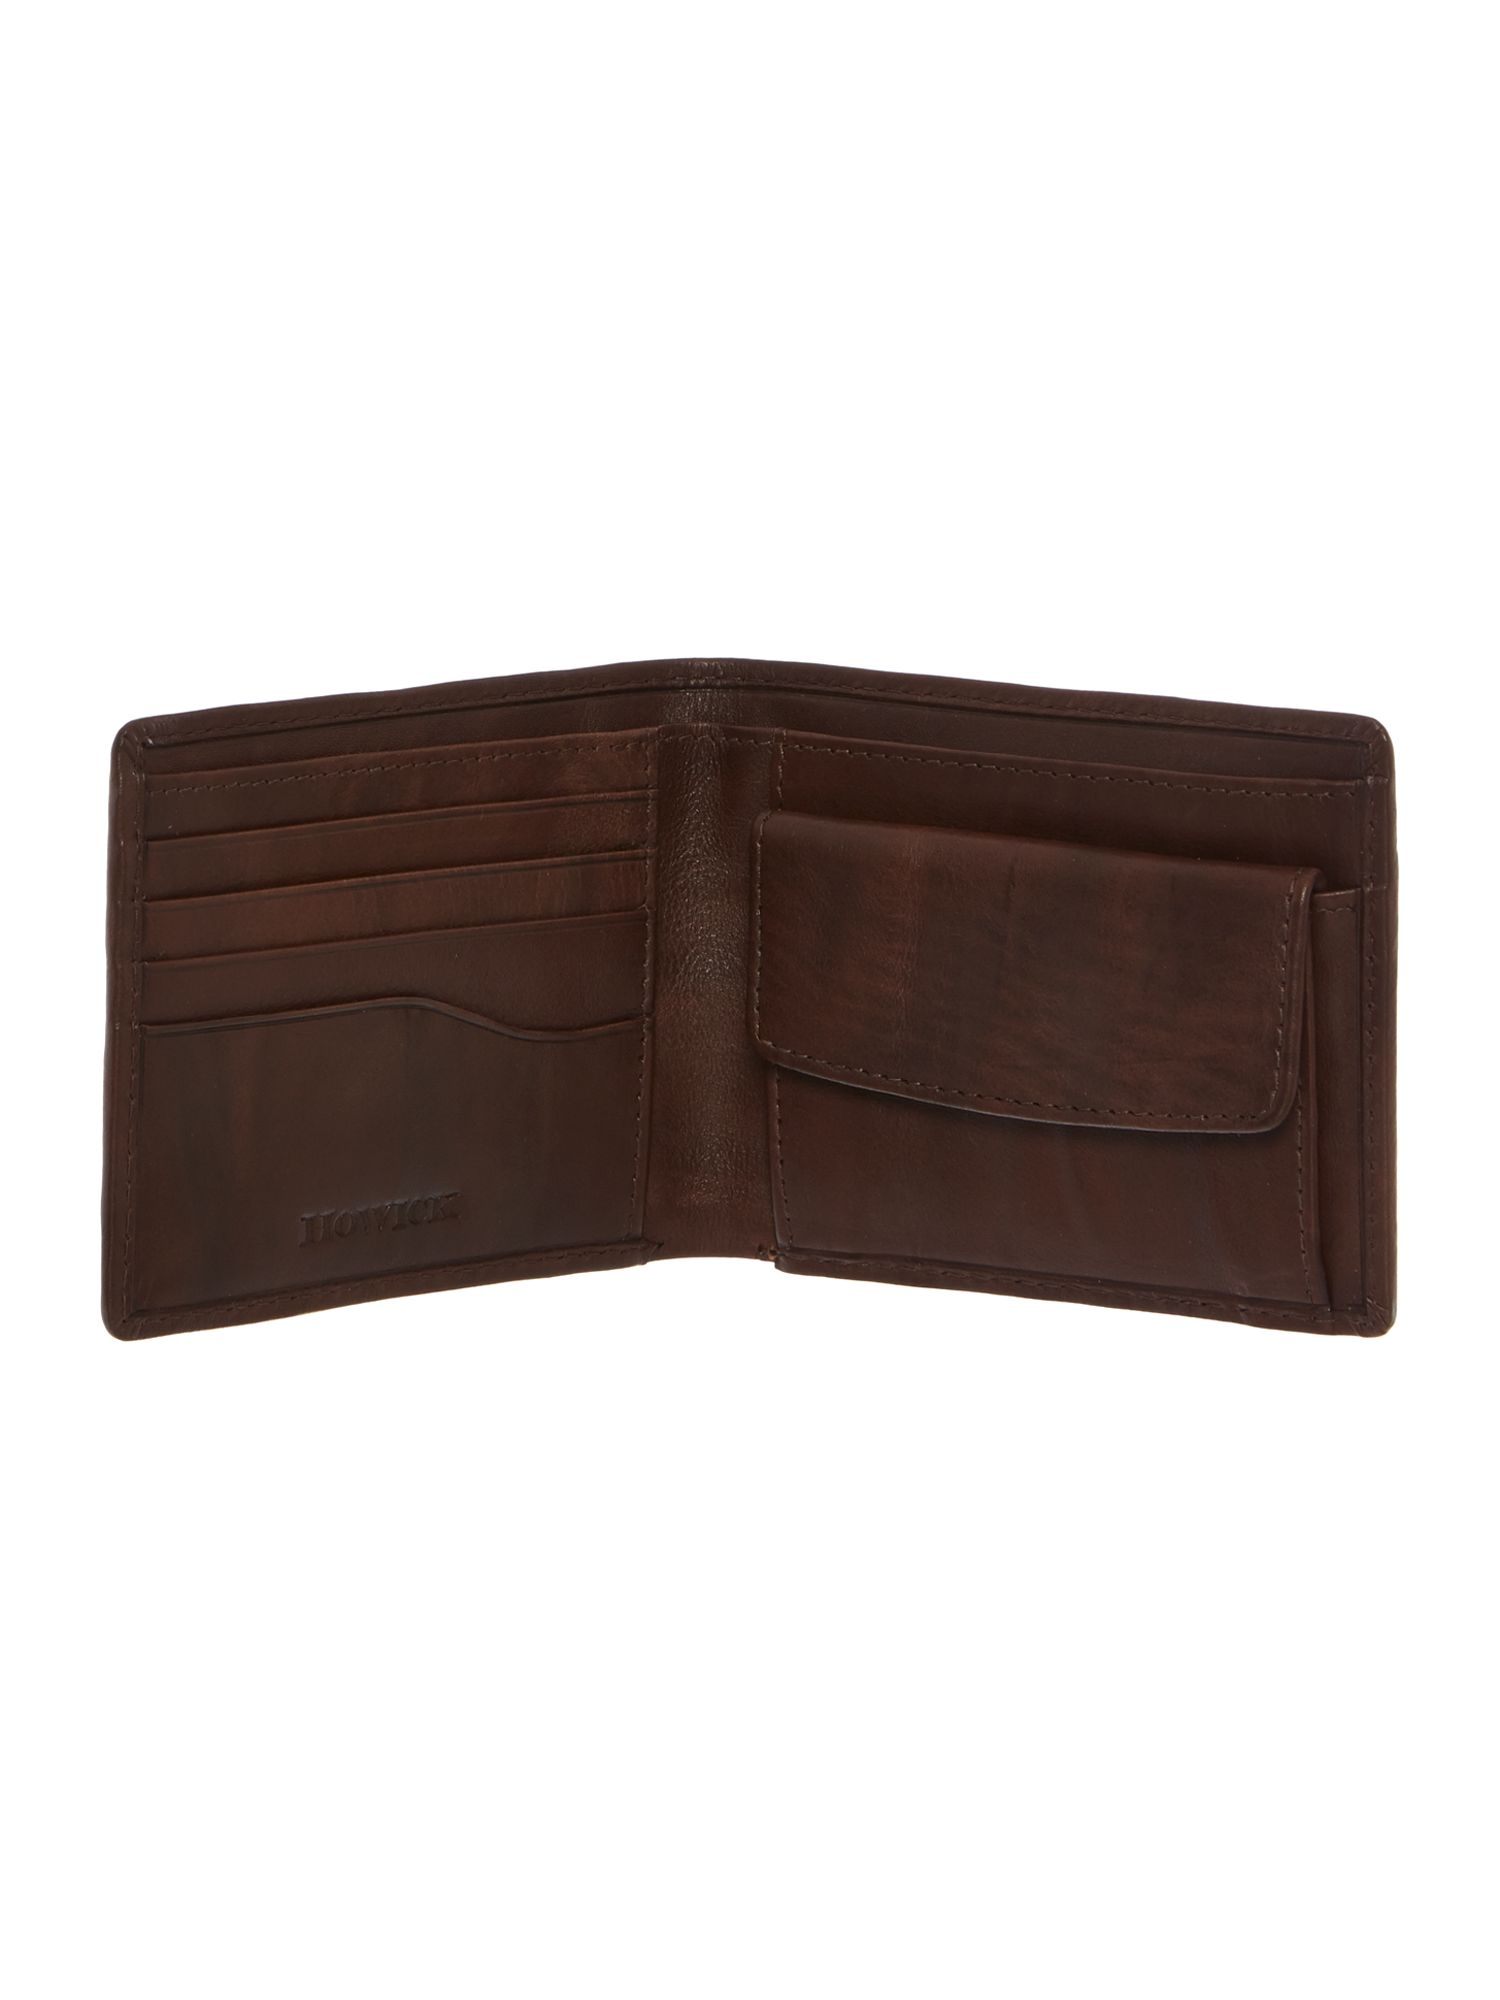 Contrast bifold wallet with coin pocket